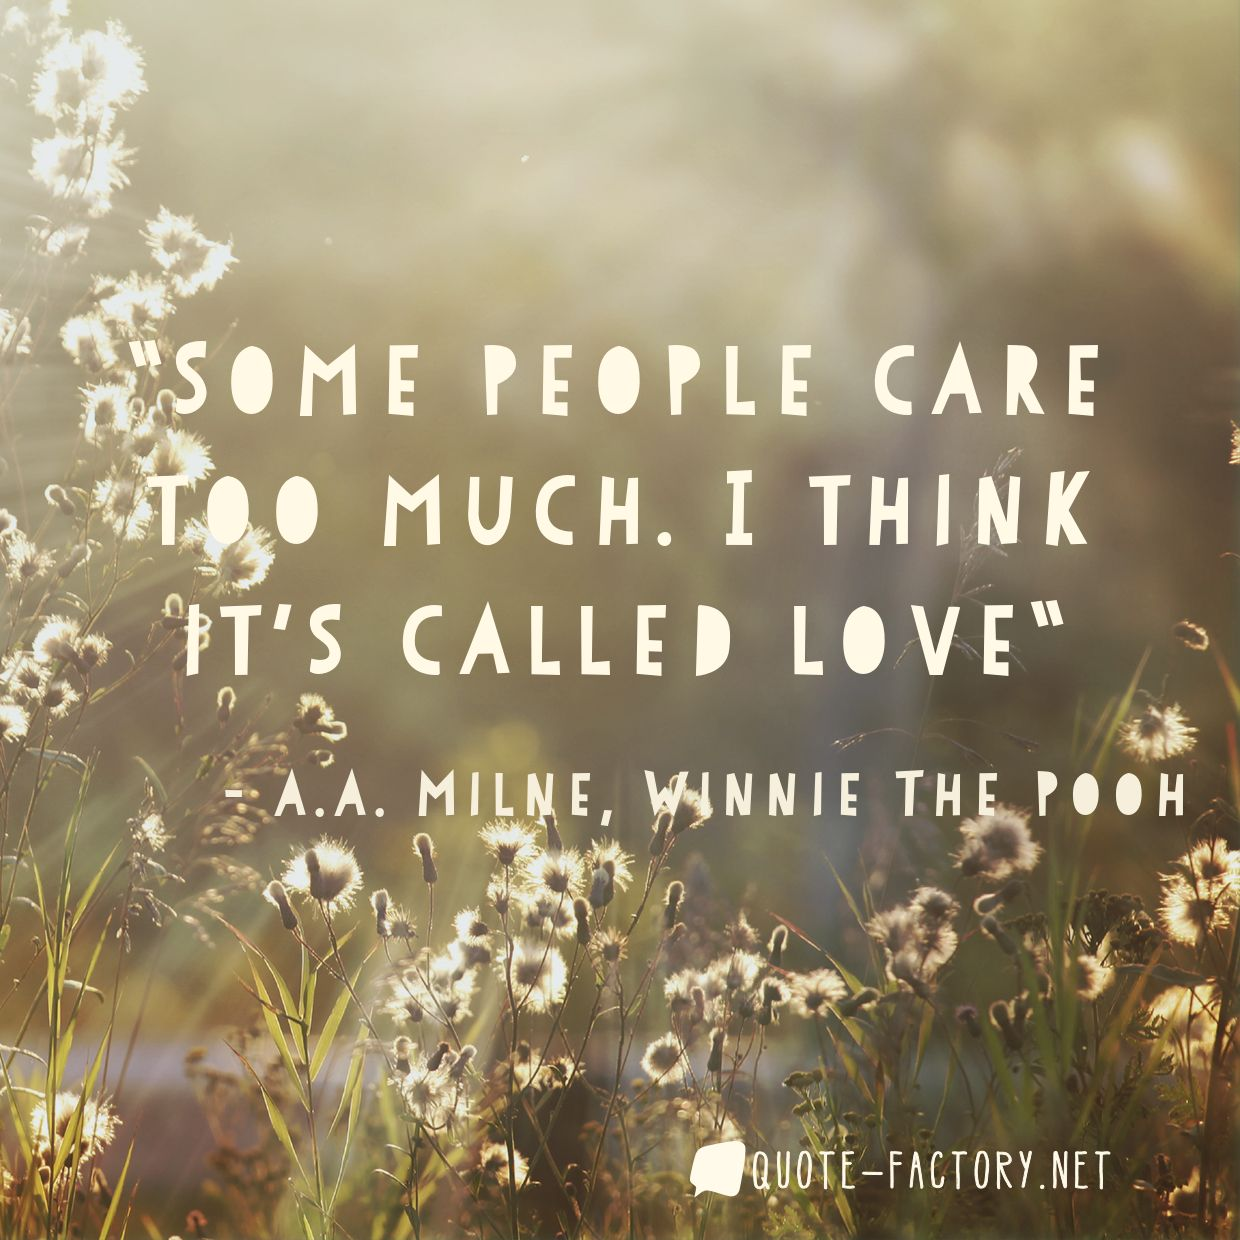 Some people care too much. I think it's called love